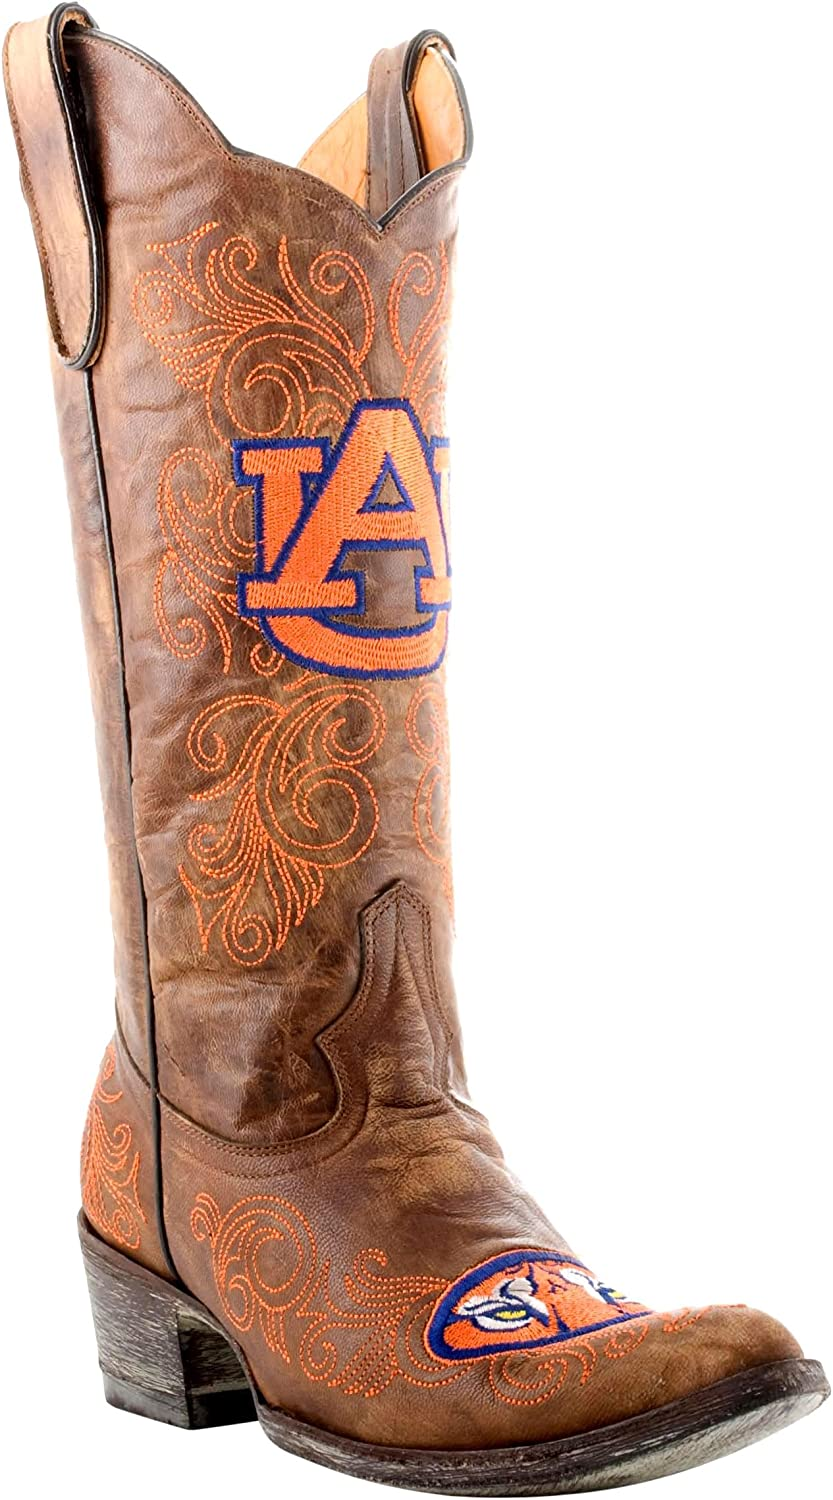 Gameday Boots Womens Ladies 13 Inch Auburn Gameday Boot 5 B (M) US  Brass AUBL001P